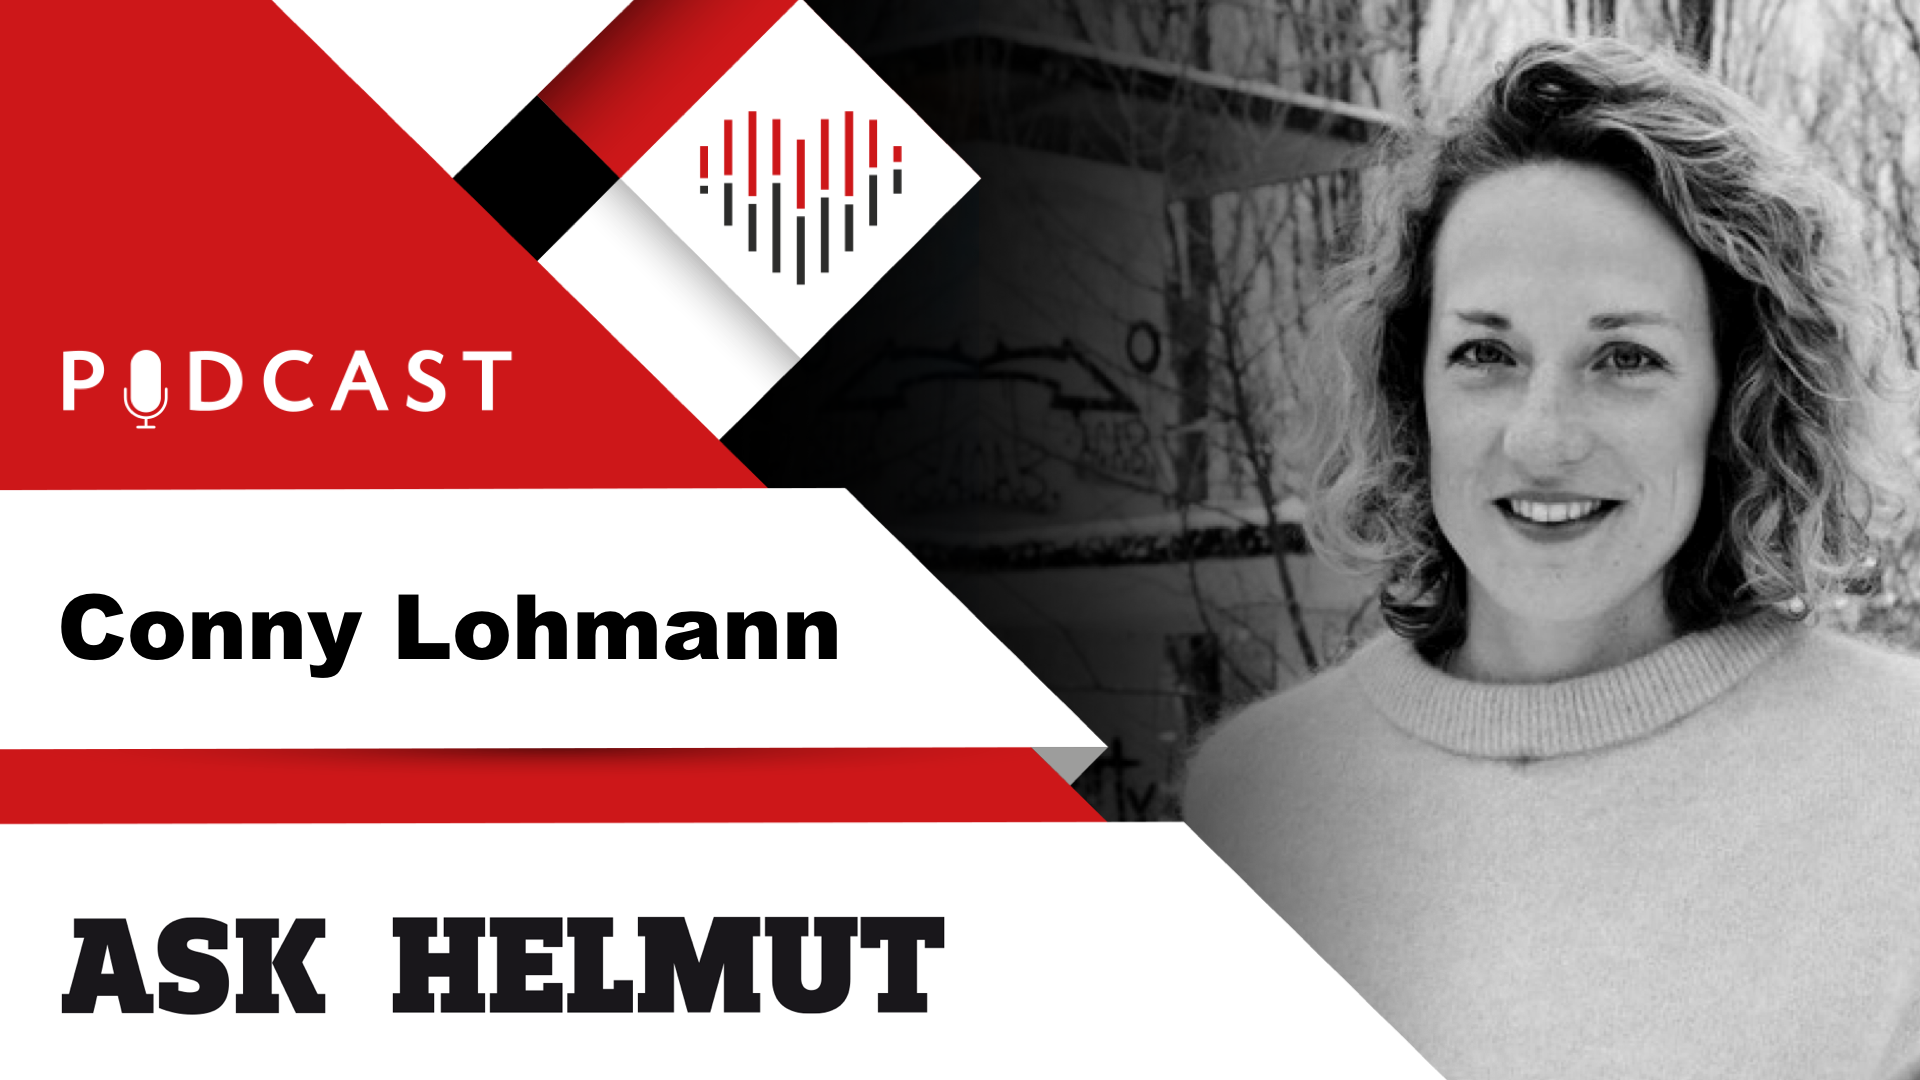 Digital Beat Podcast - Ask Helmut - Conny Lohmann